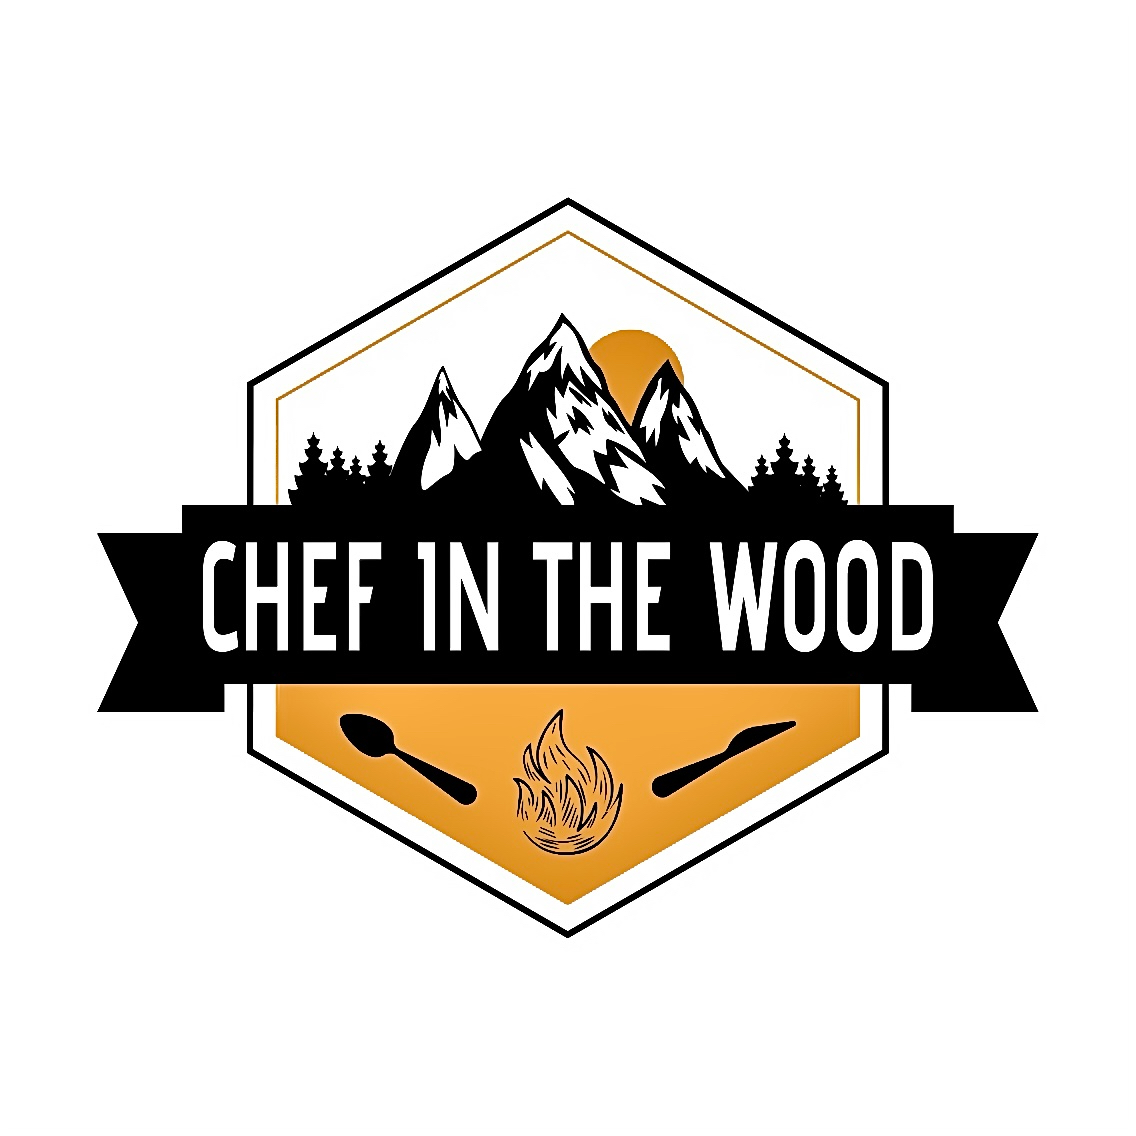 Image of Chef in The Wood